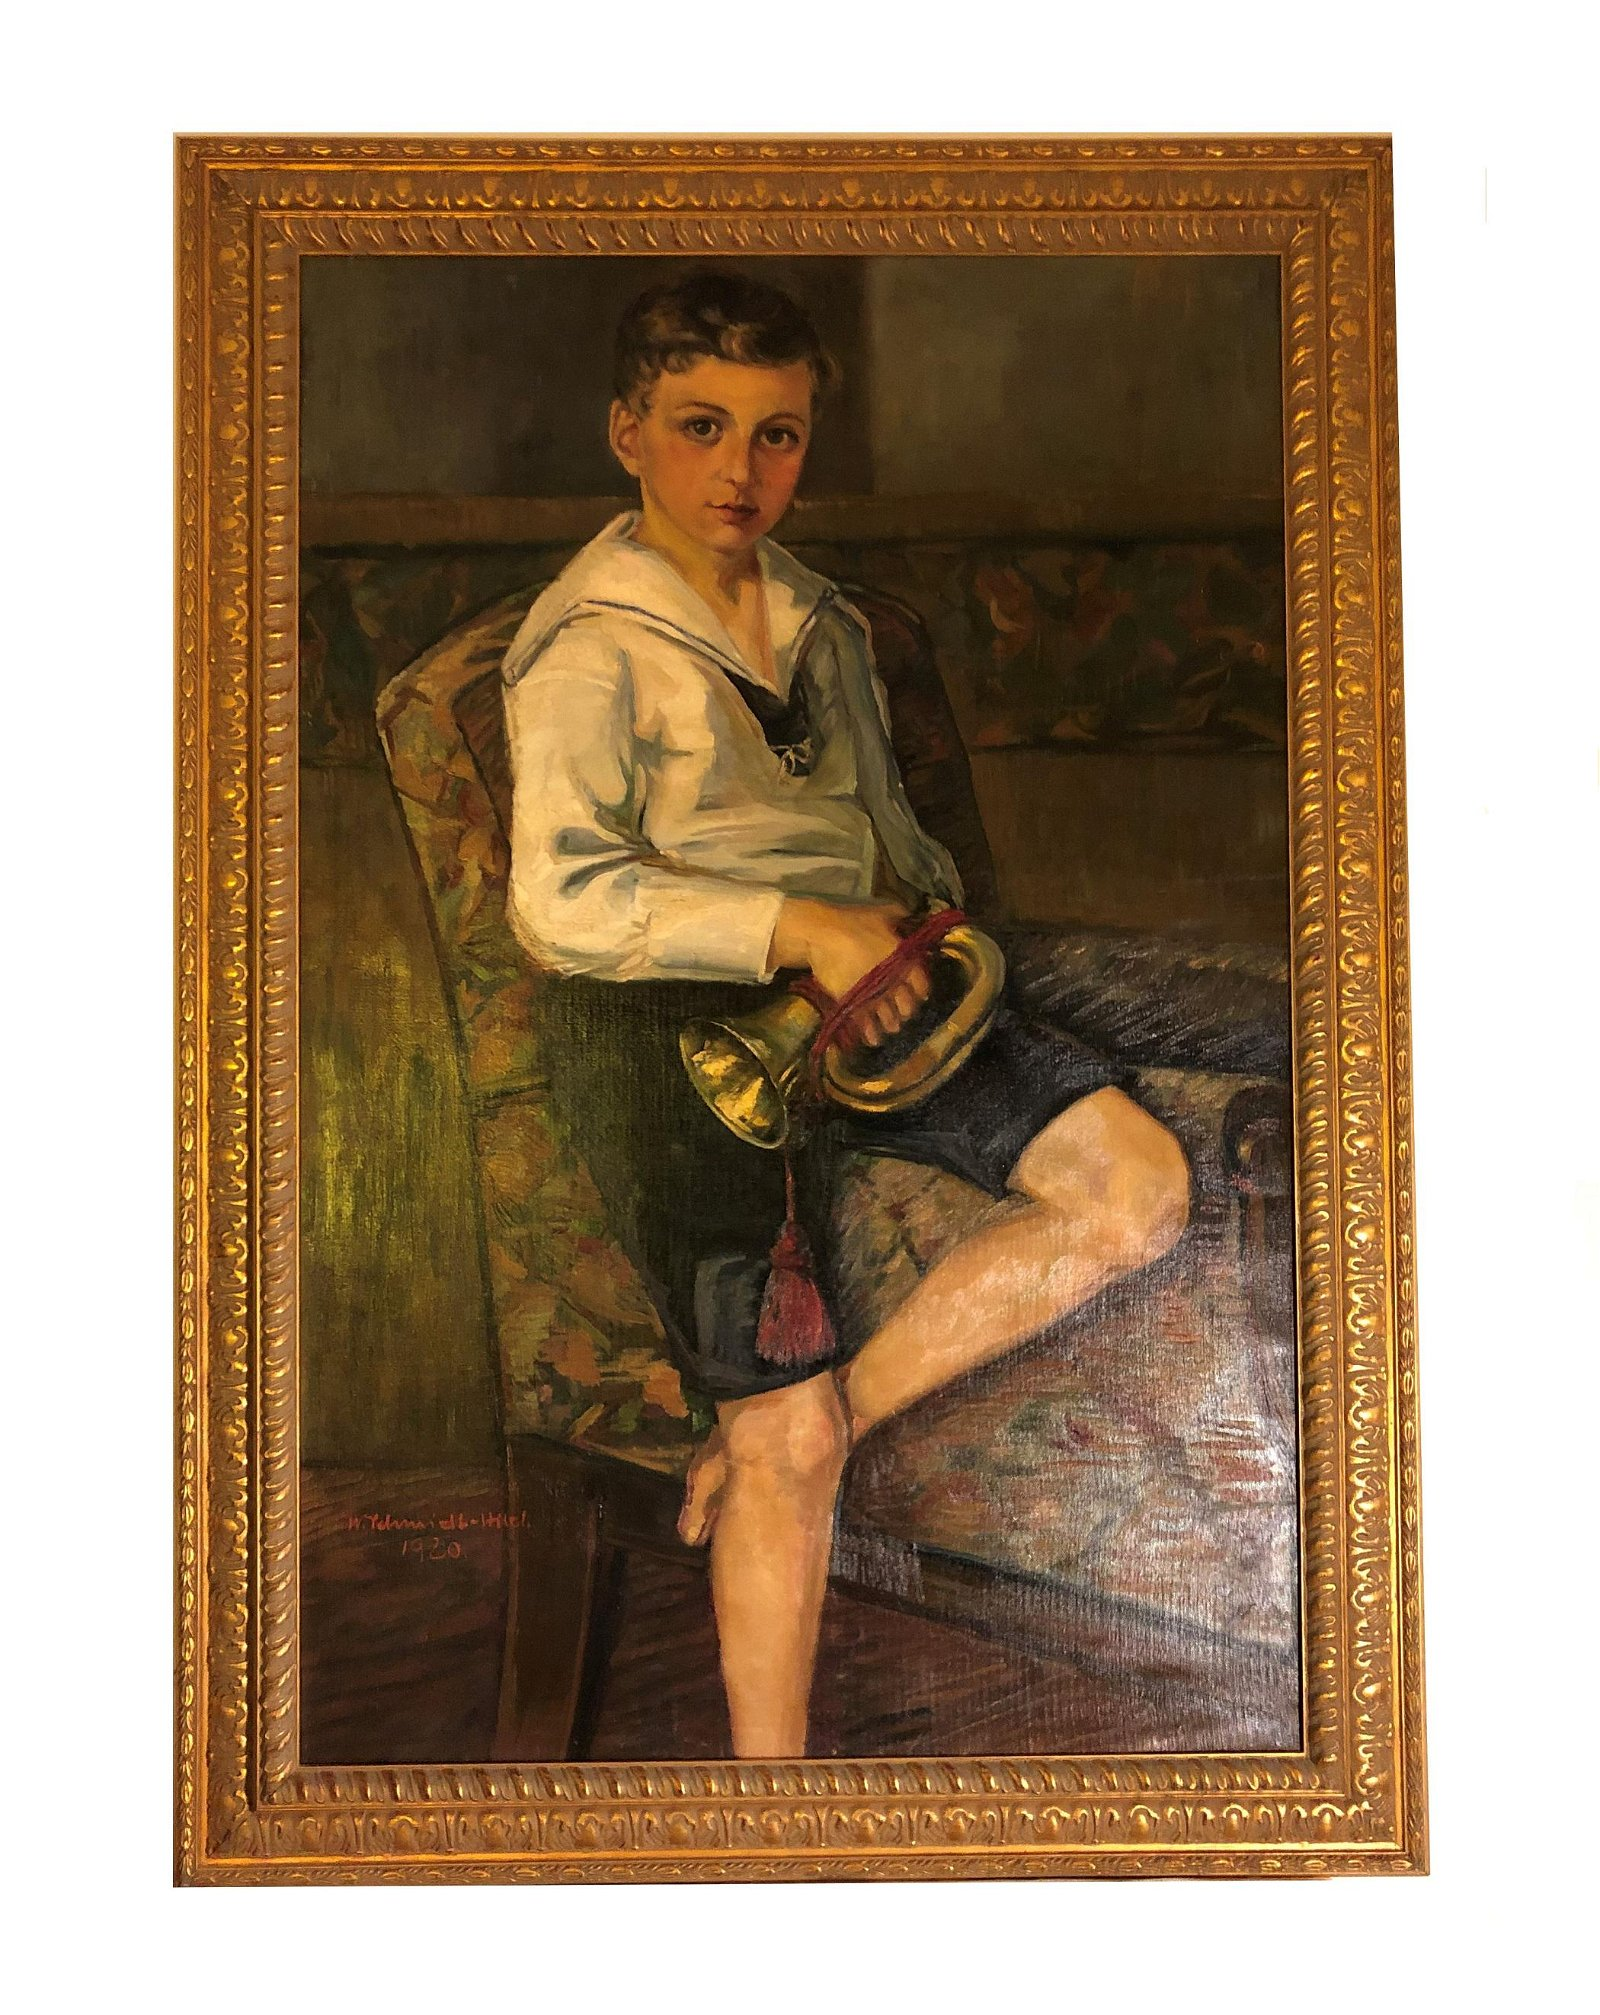 Mystery Artist. 1920 Oil on Canvas Painting.